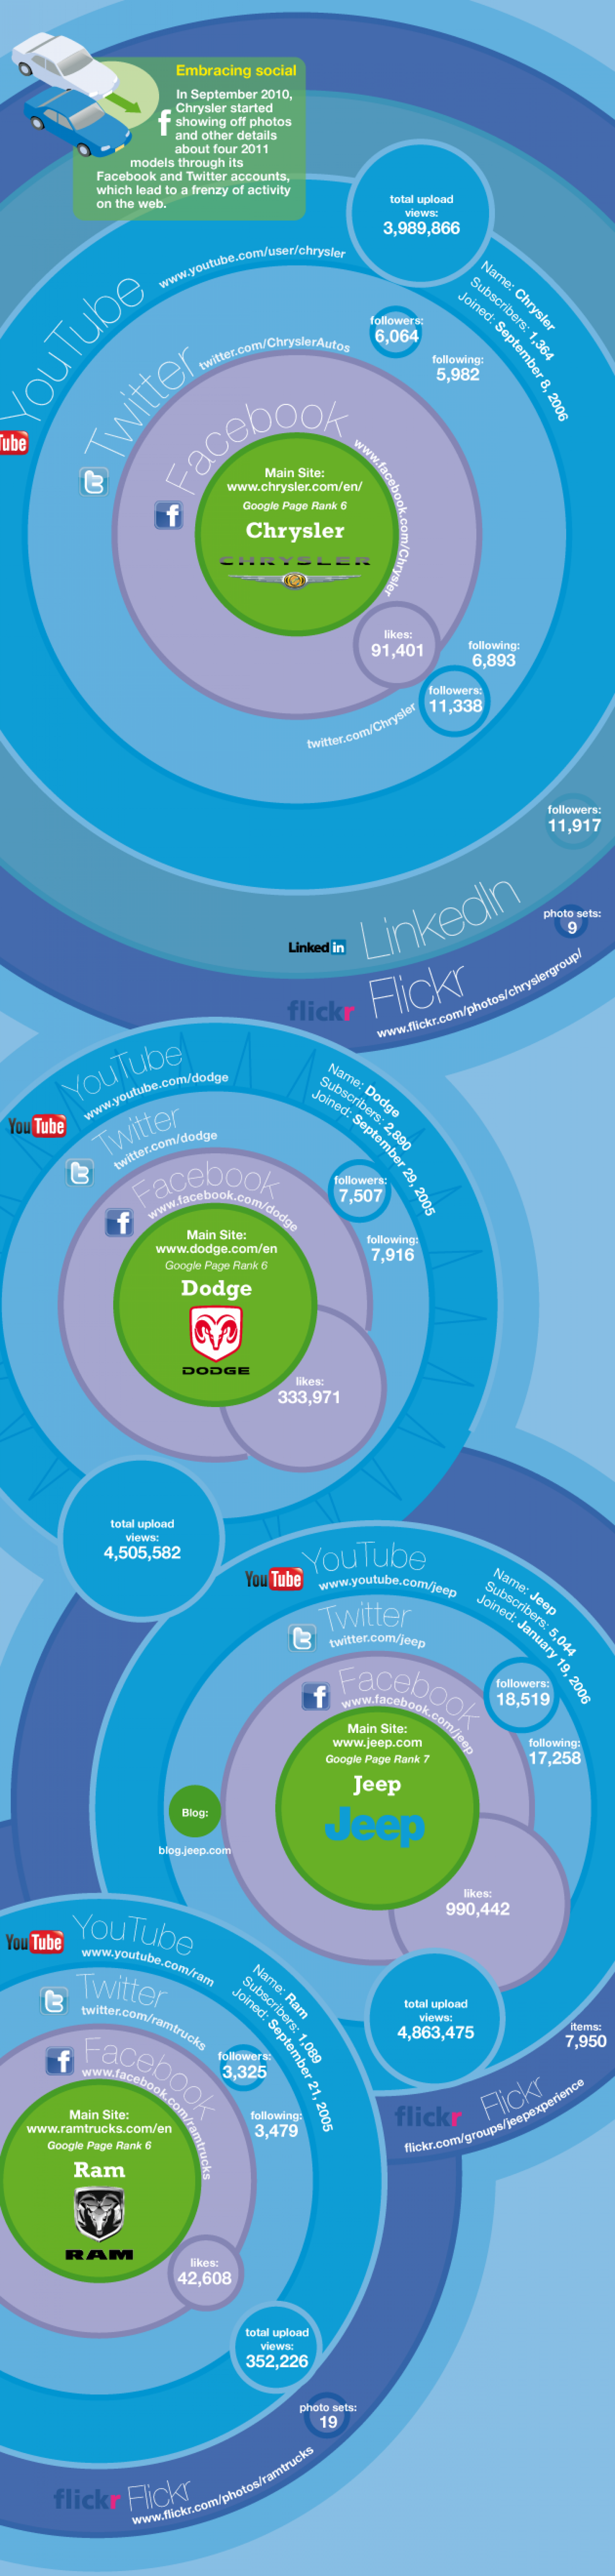 A Closer Look at GM's Social Media Strategy Infographic